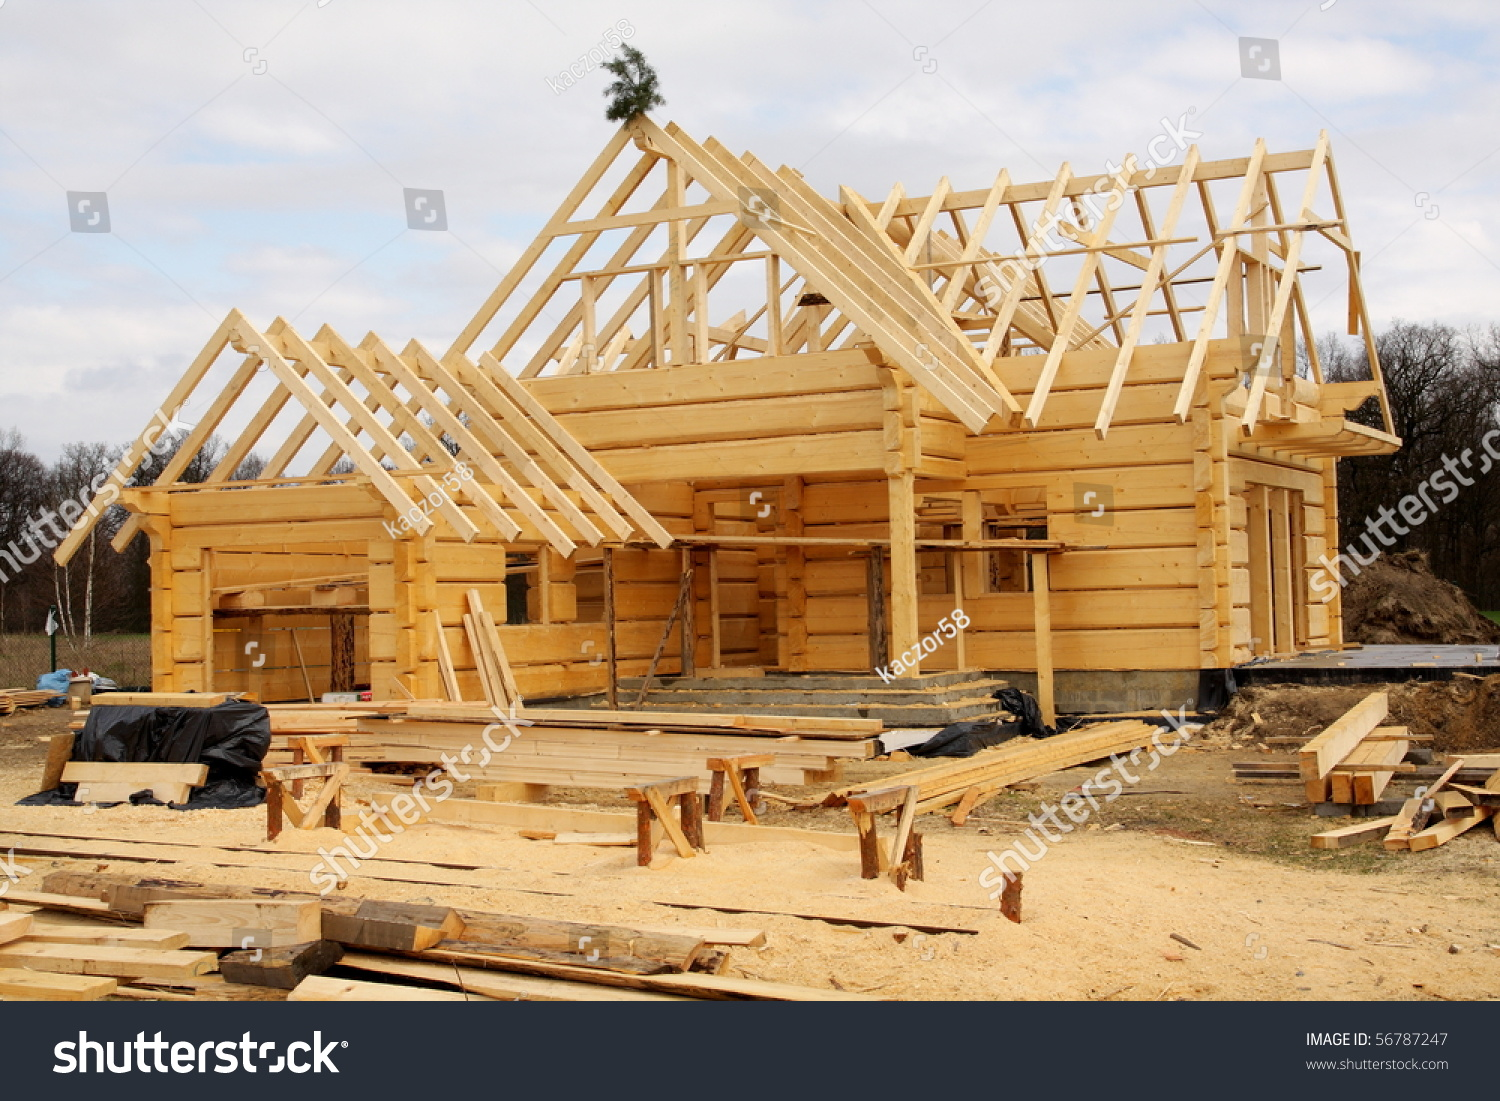 Unfinished ecological wooden house building area stock for Best wood for building a house